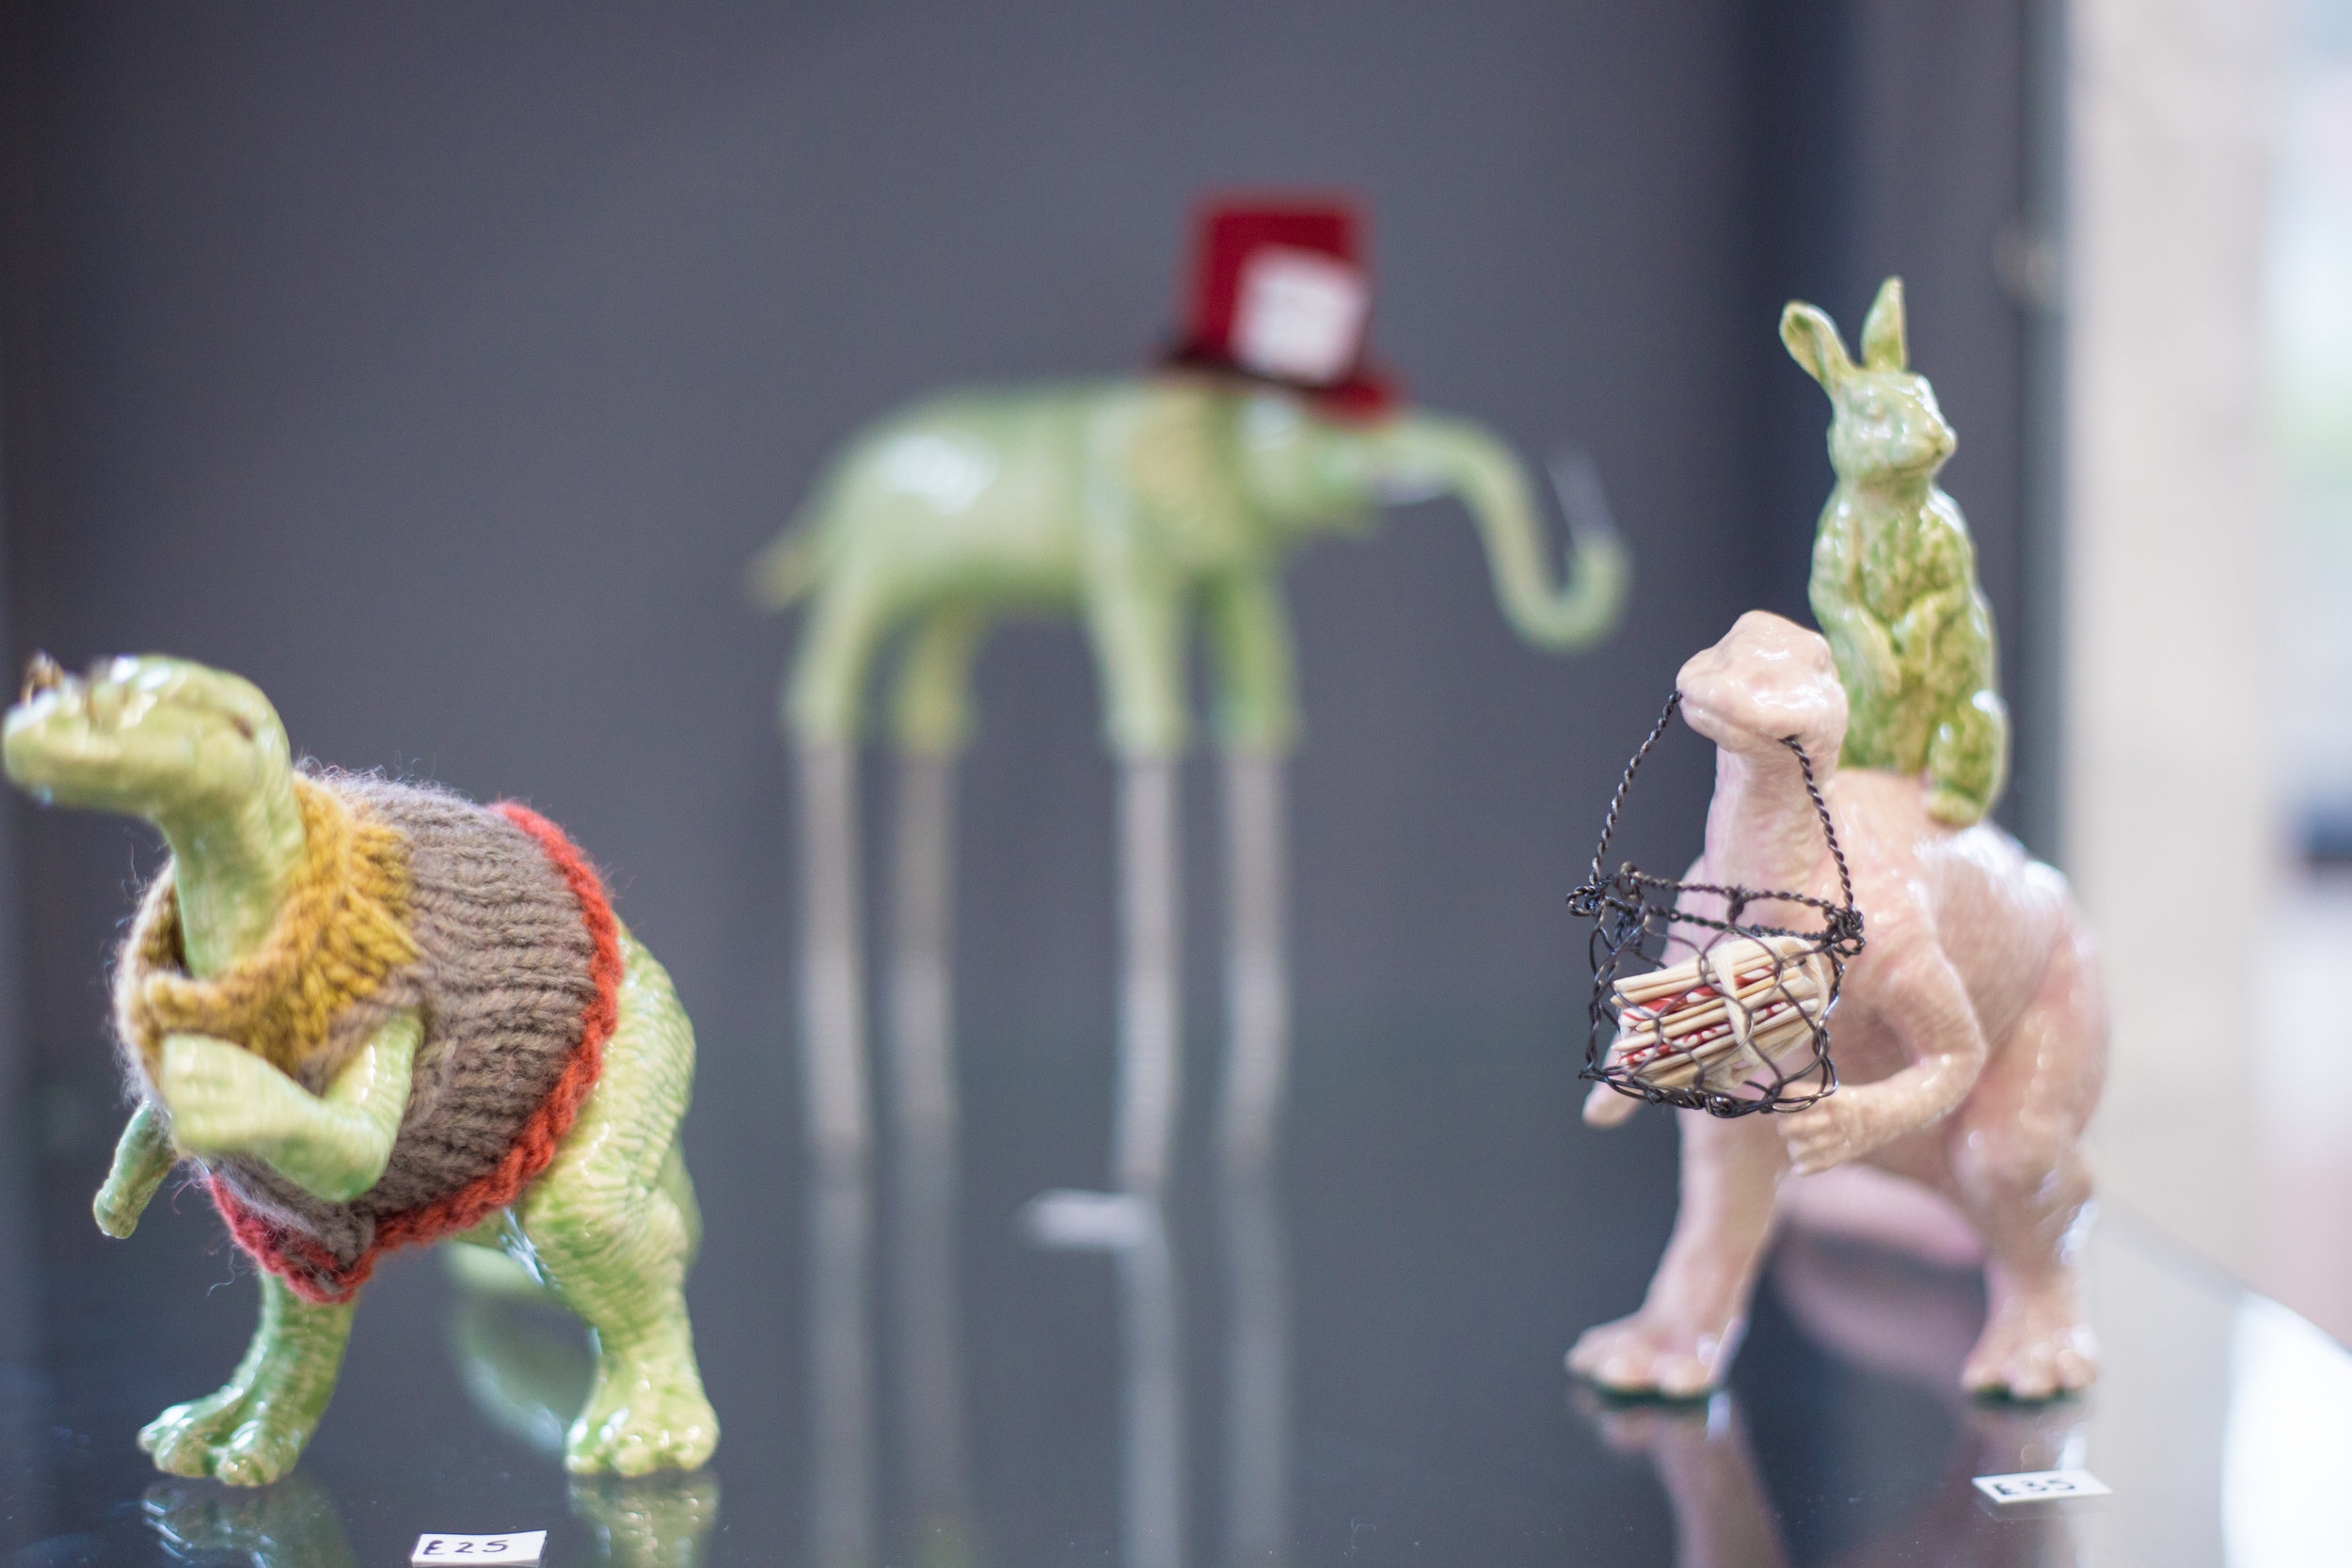 Beth Cartwright - A SERIES OF PERSONIFIED CERAMIC ANIMALS WITH HANDMADE ACCESSORIESFUTURE PLANS: SECURED A STUDIO TENANCY AT WEST STUDIOS TO MAKE MORE WORK FOR OTHER RETAILERS